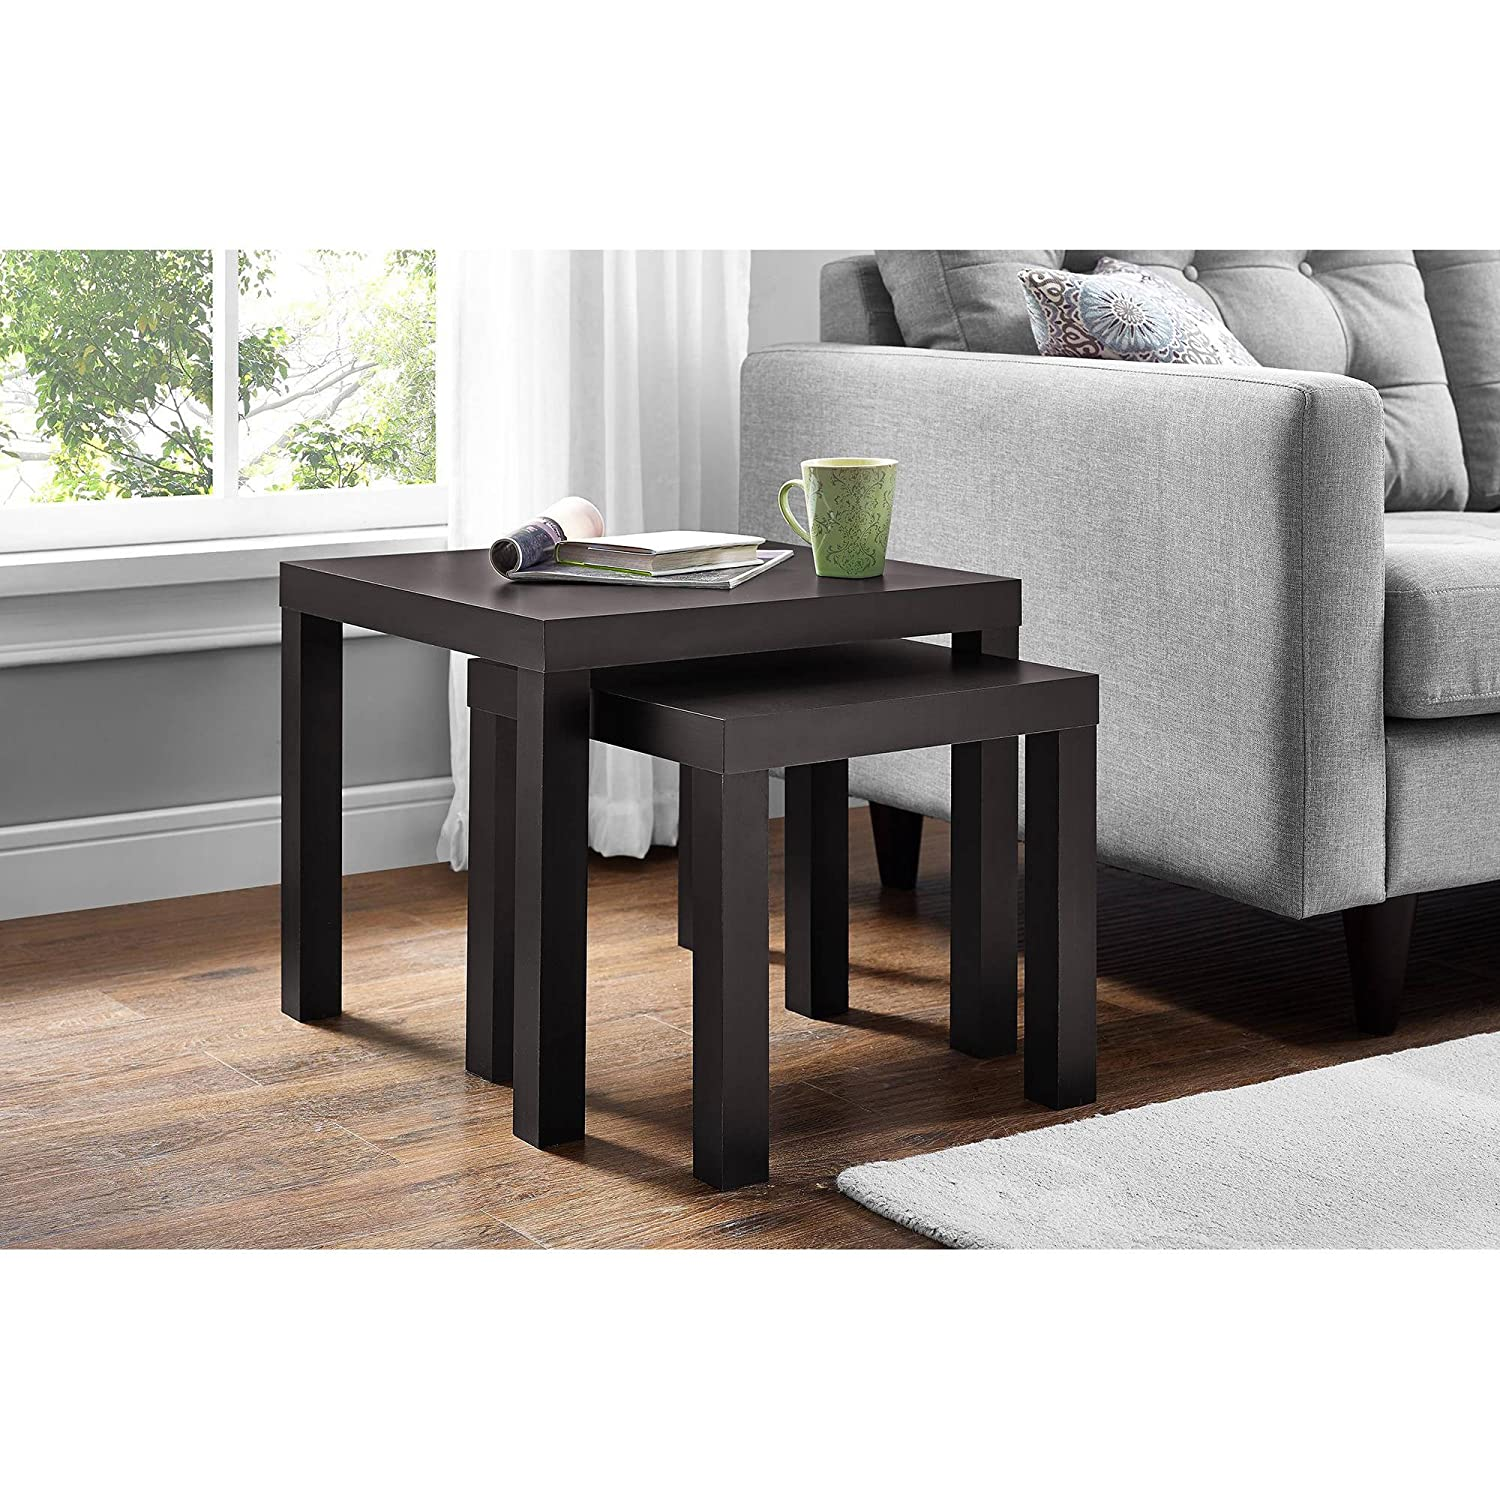 Amazon com parsons living dining room side nesting coffee tables 2 piece table set dark brown espresso kitchen dining